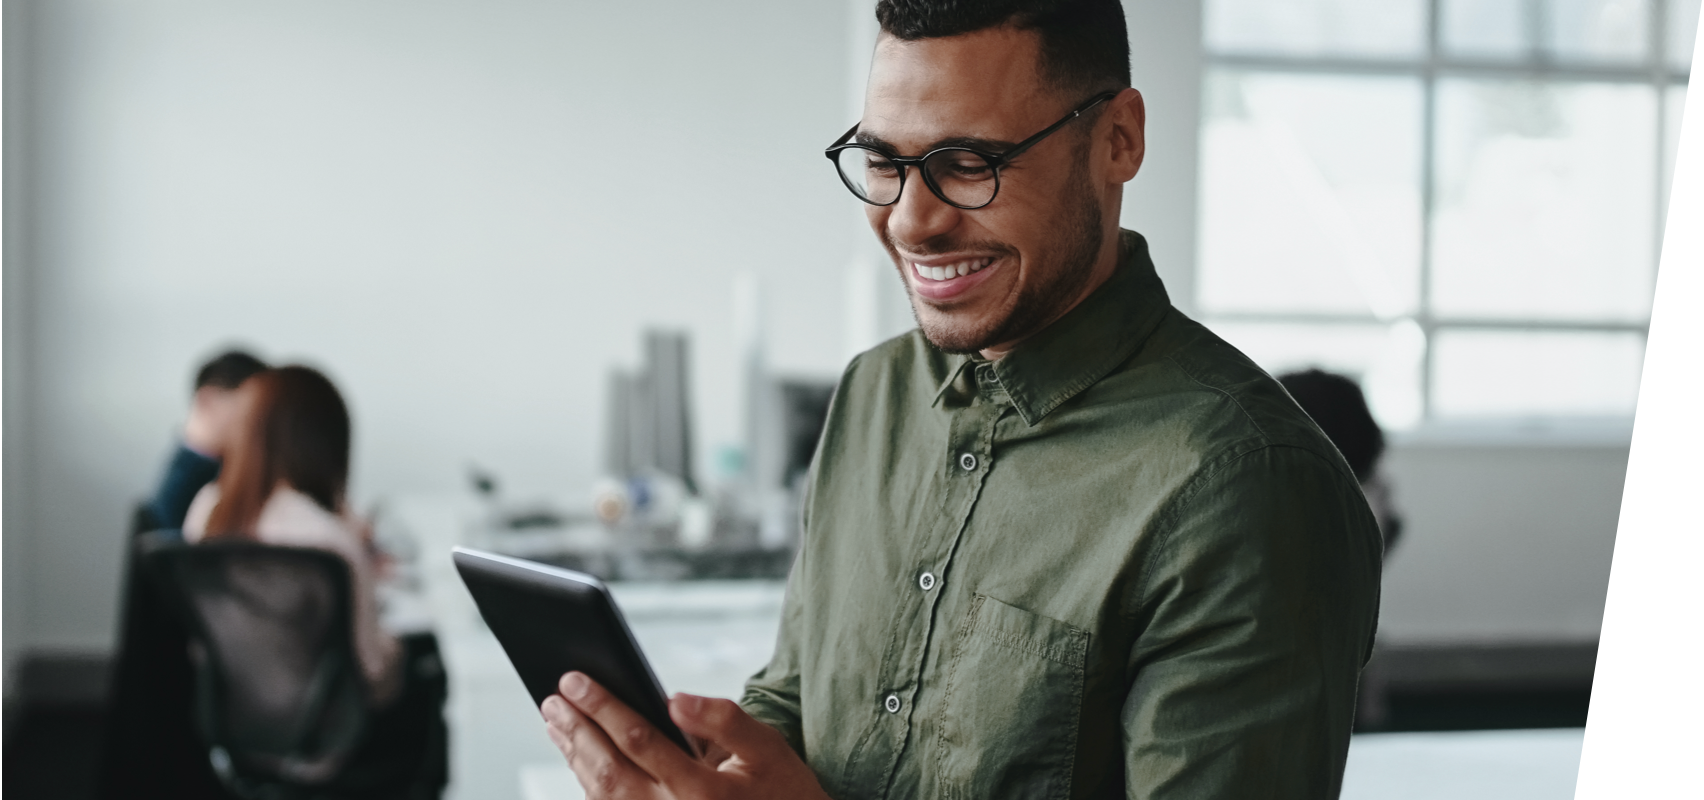 Smiling man looking at bank accounts on a tablet